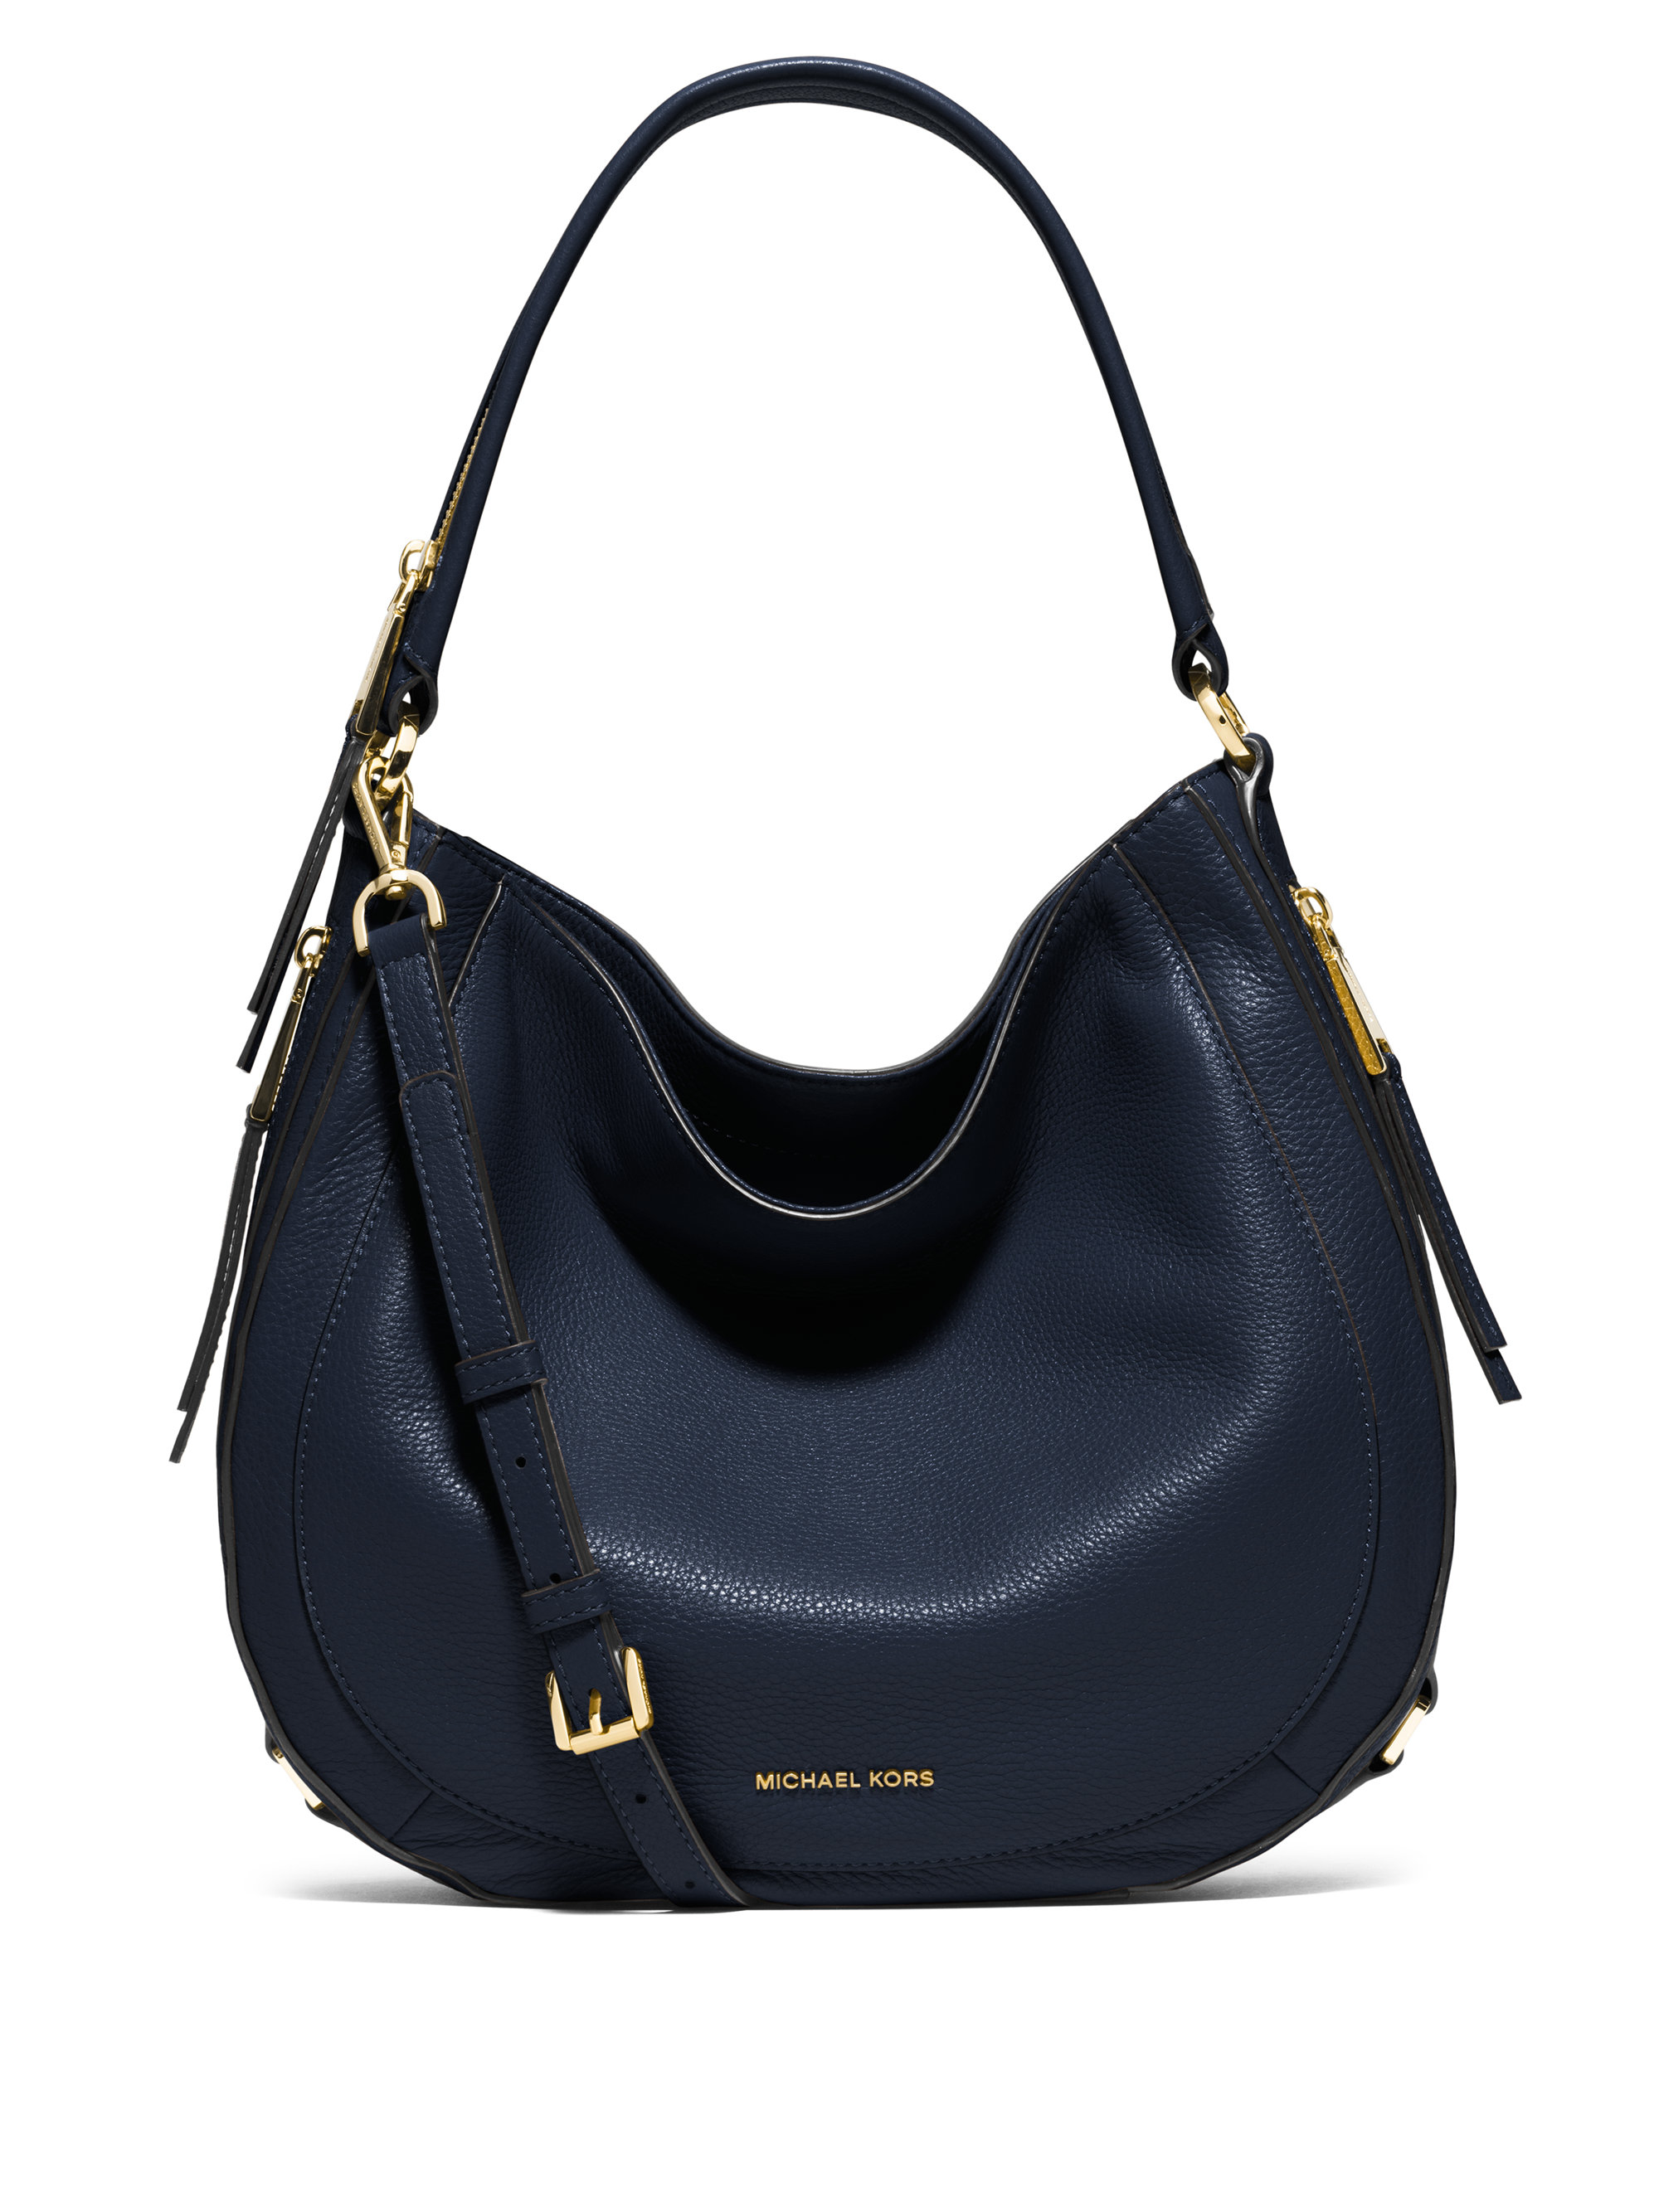 Michael michael kors Julia Medium Leather Hobo Bag in Blue | Lyst